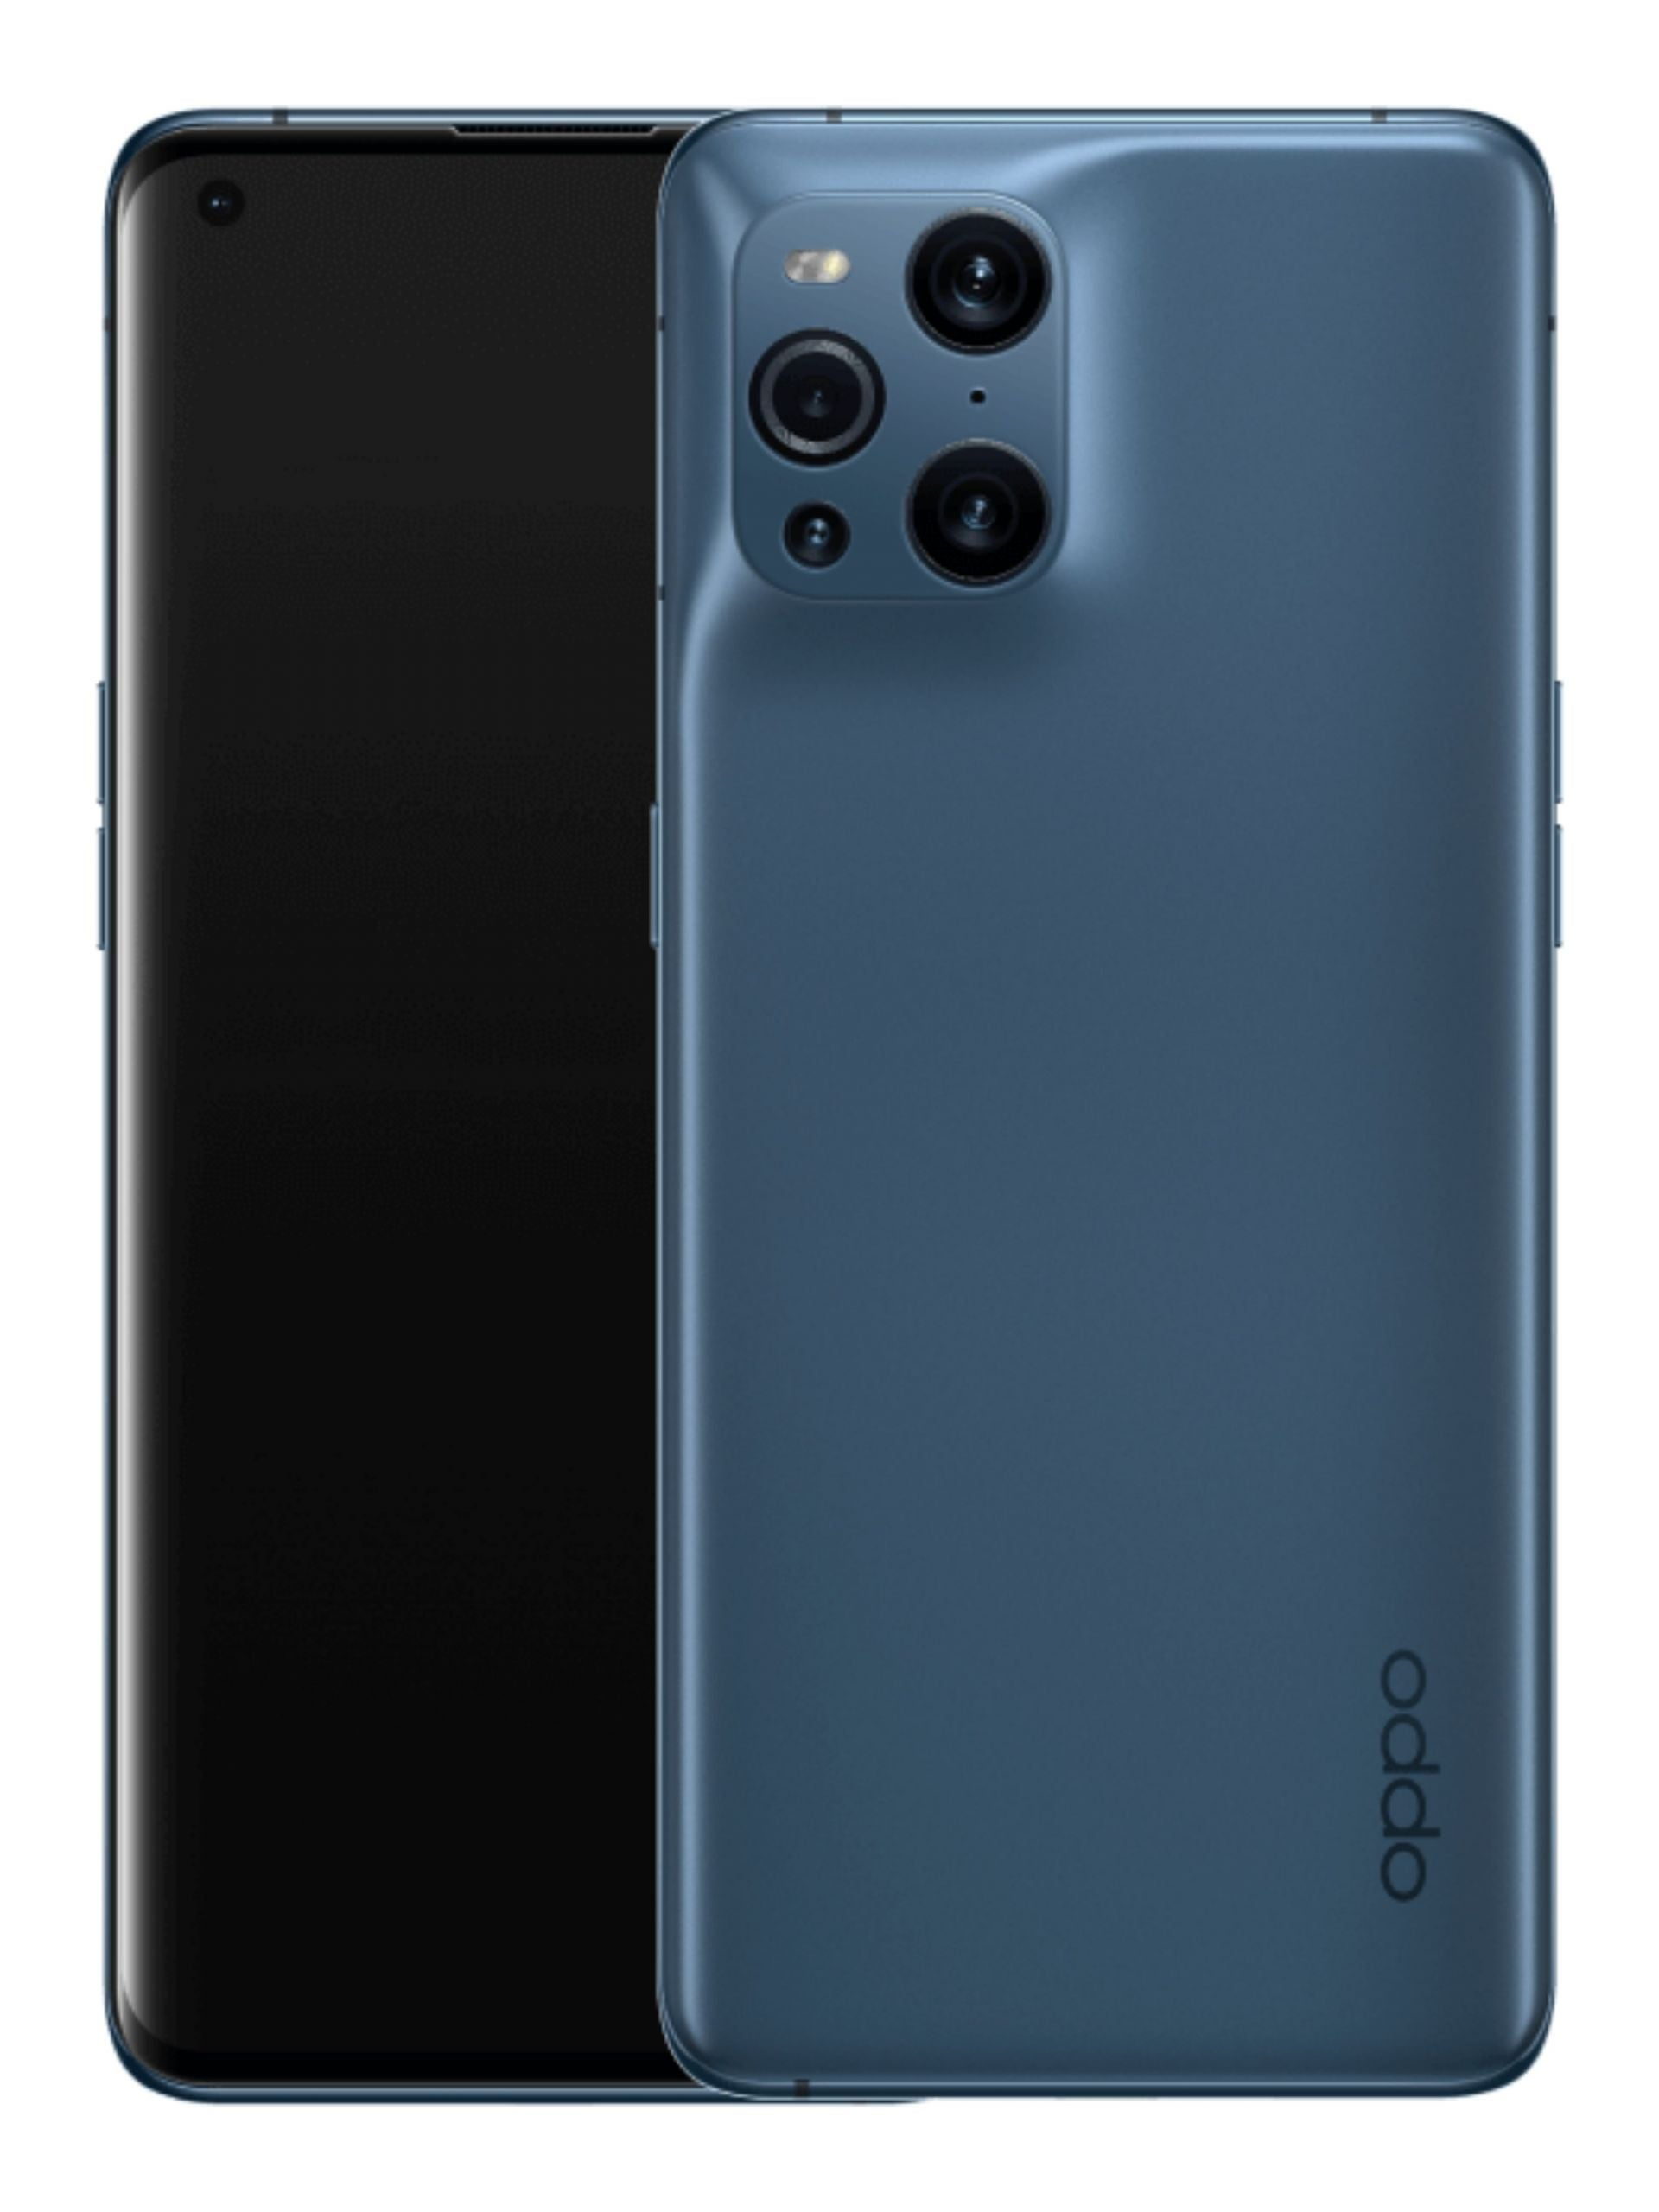 The OPPO Find X3 Pro